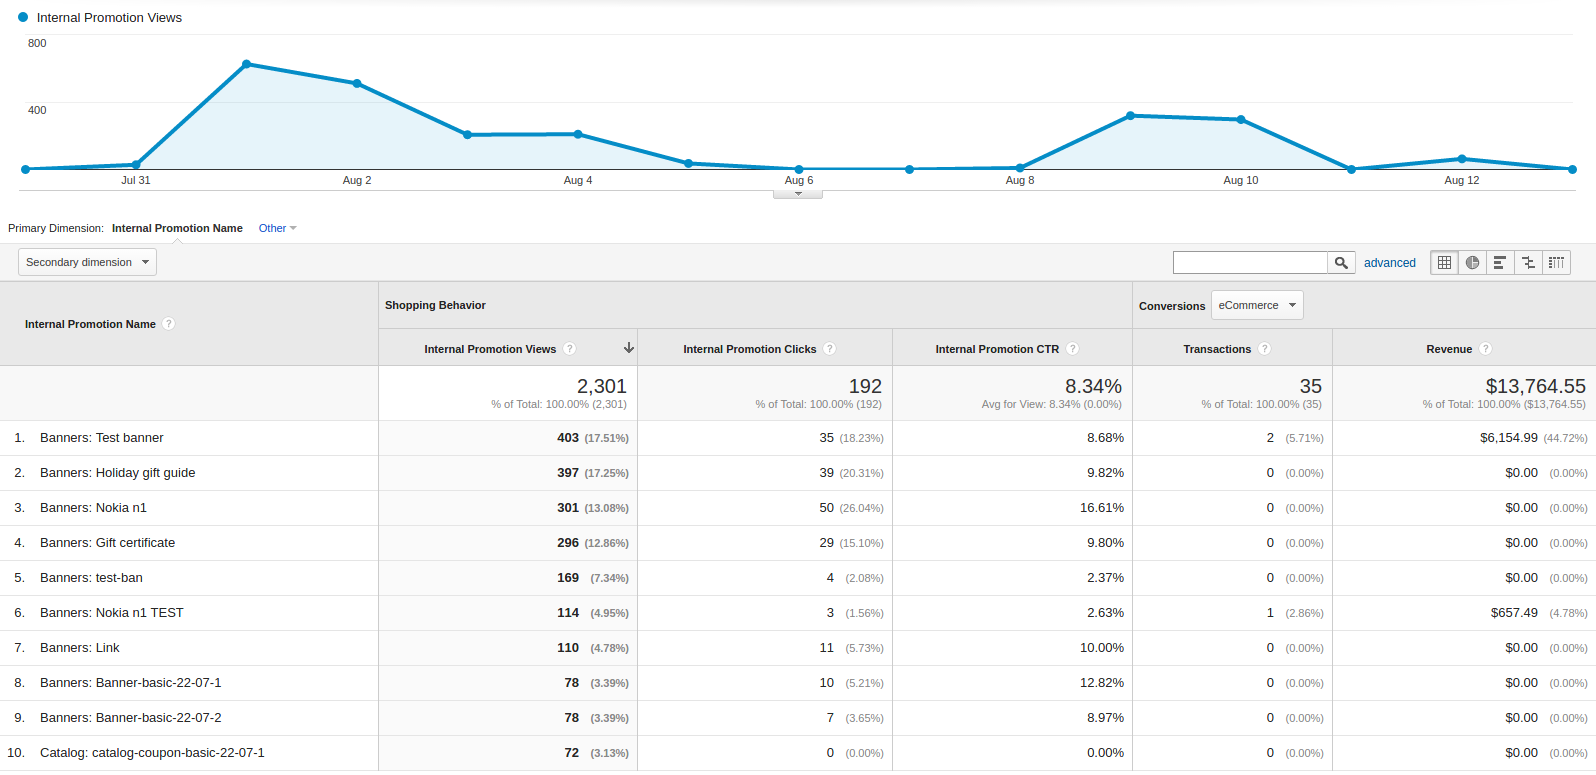 Google Analytics Enhanced Ecommerce Statistics